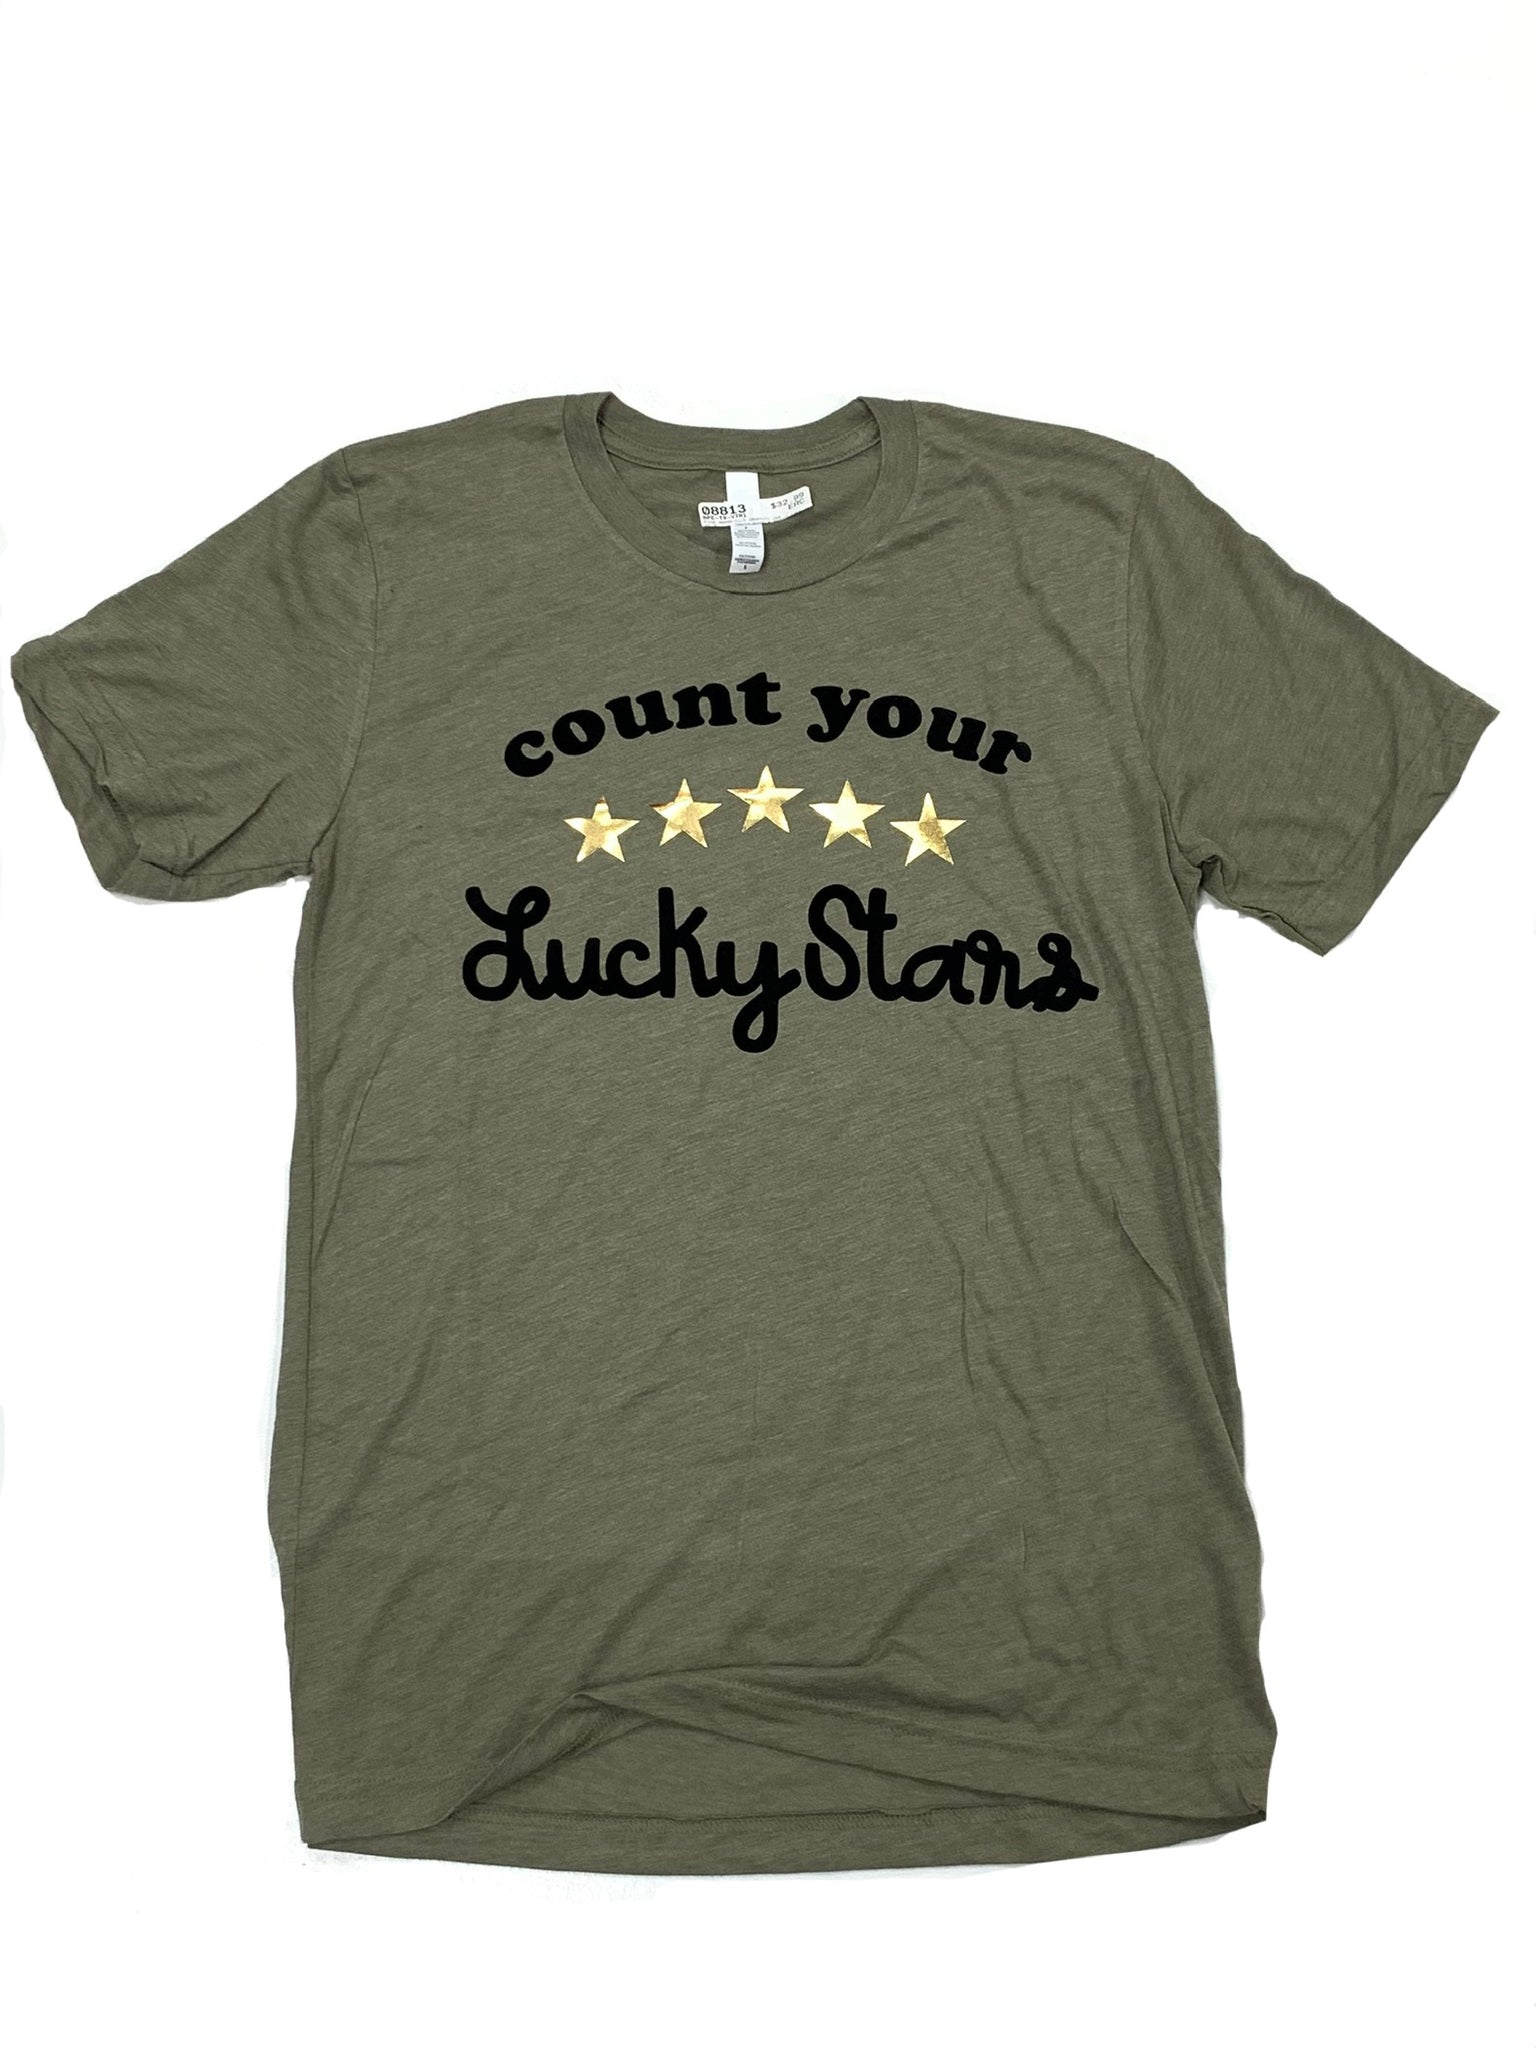 Count Your Lucky Stars Graphic Tee